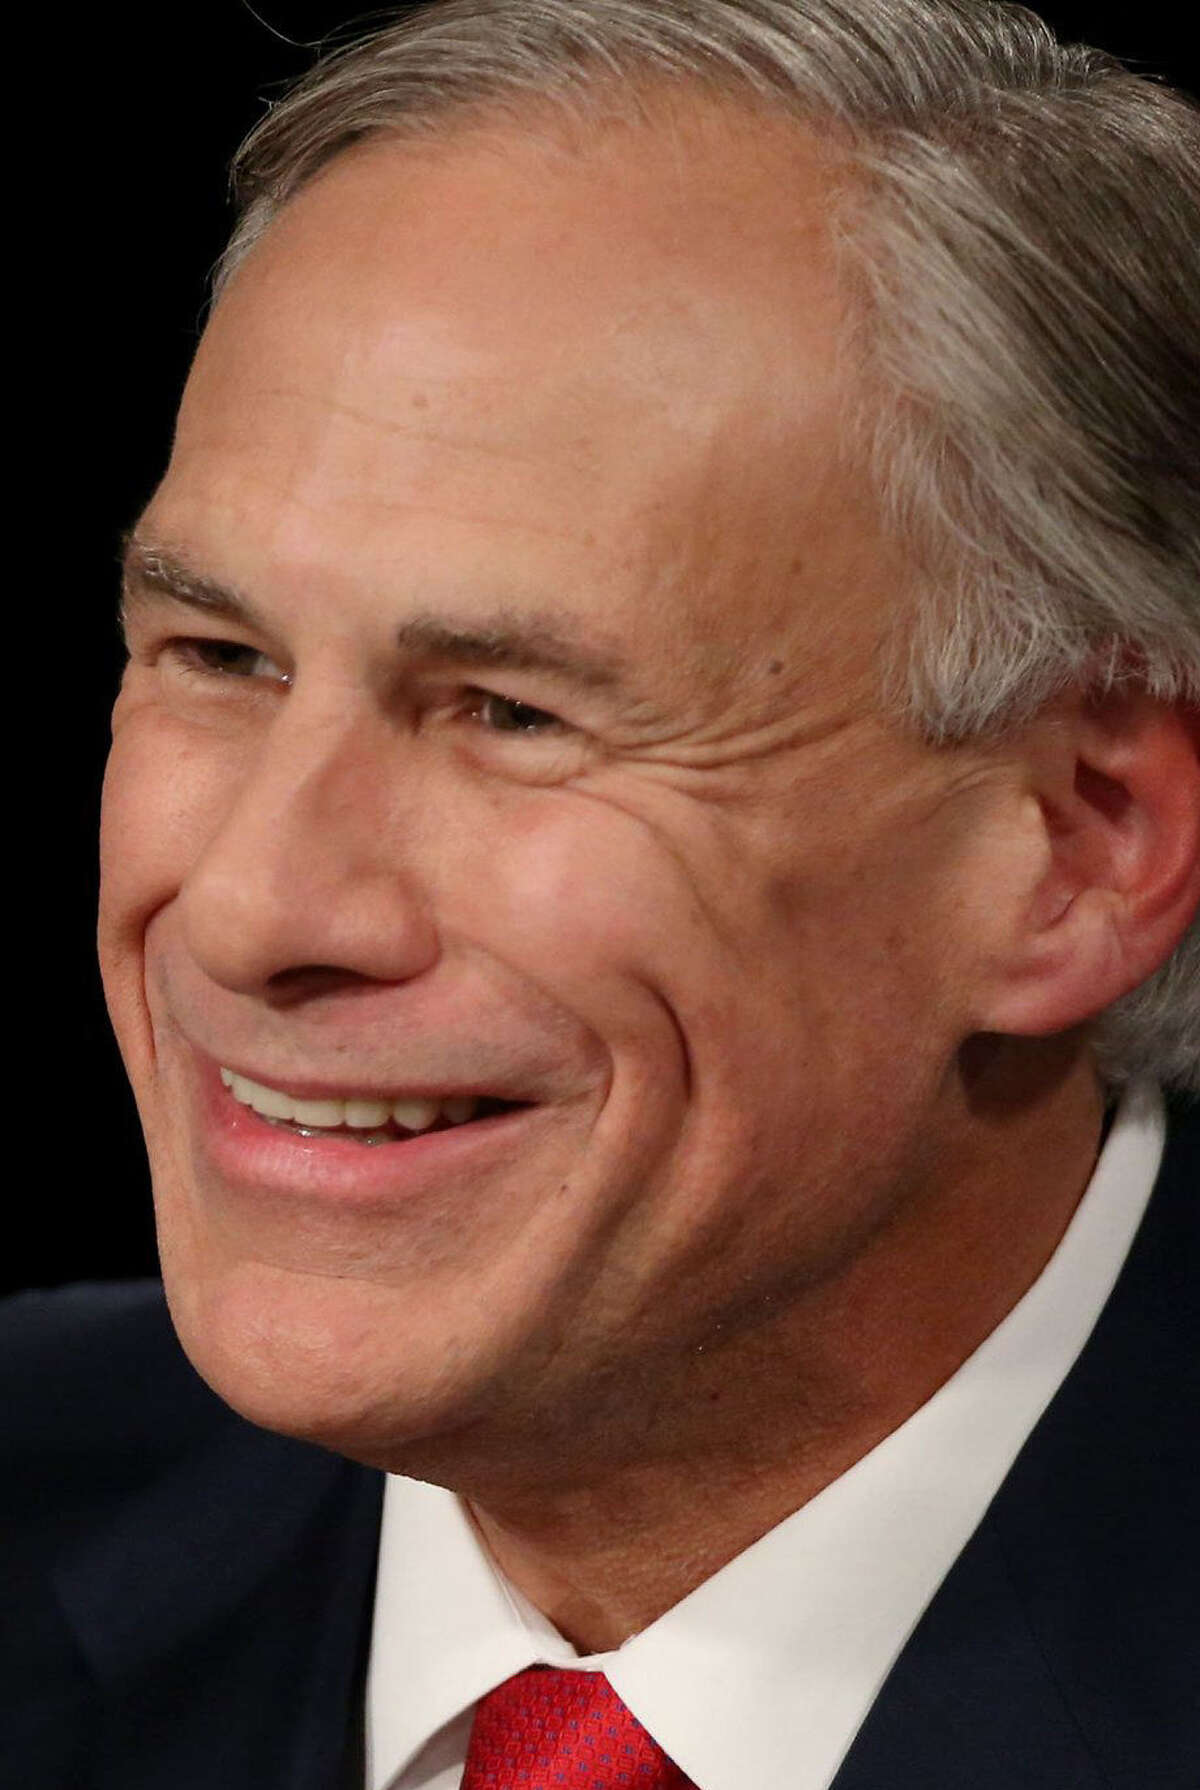 Gubernator-ial candidate Greg Abbott is said to have more than $30 million for campaign.